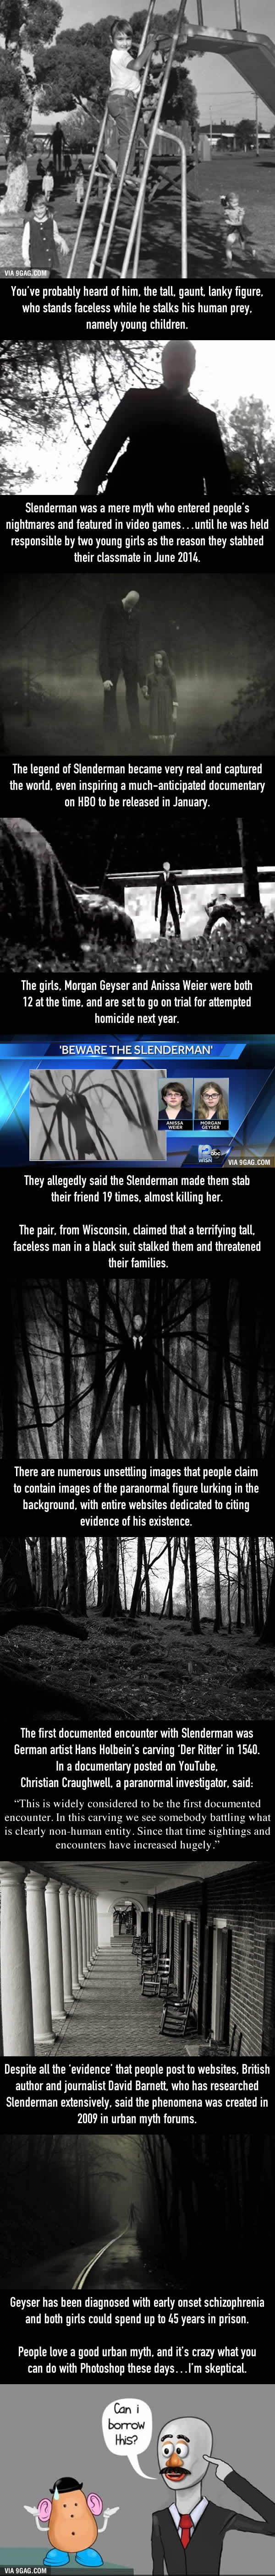 The Truth Behind Slenderman, The Creepy Figure That Inspired Murder